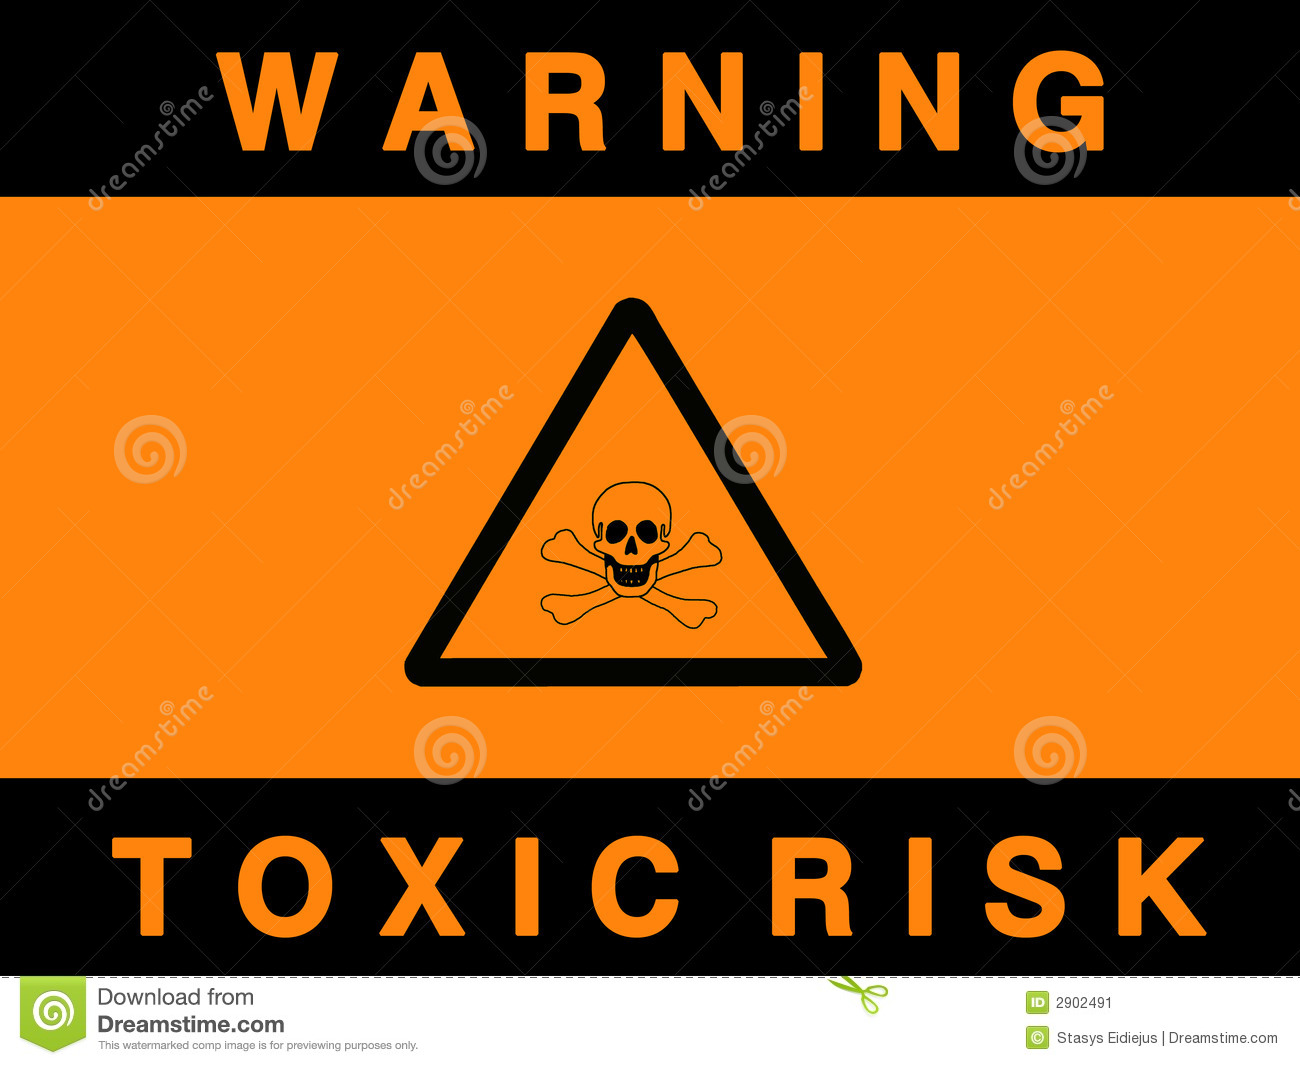 Toxic risk sign